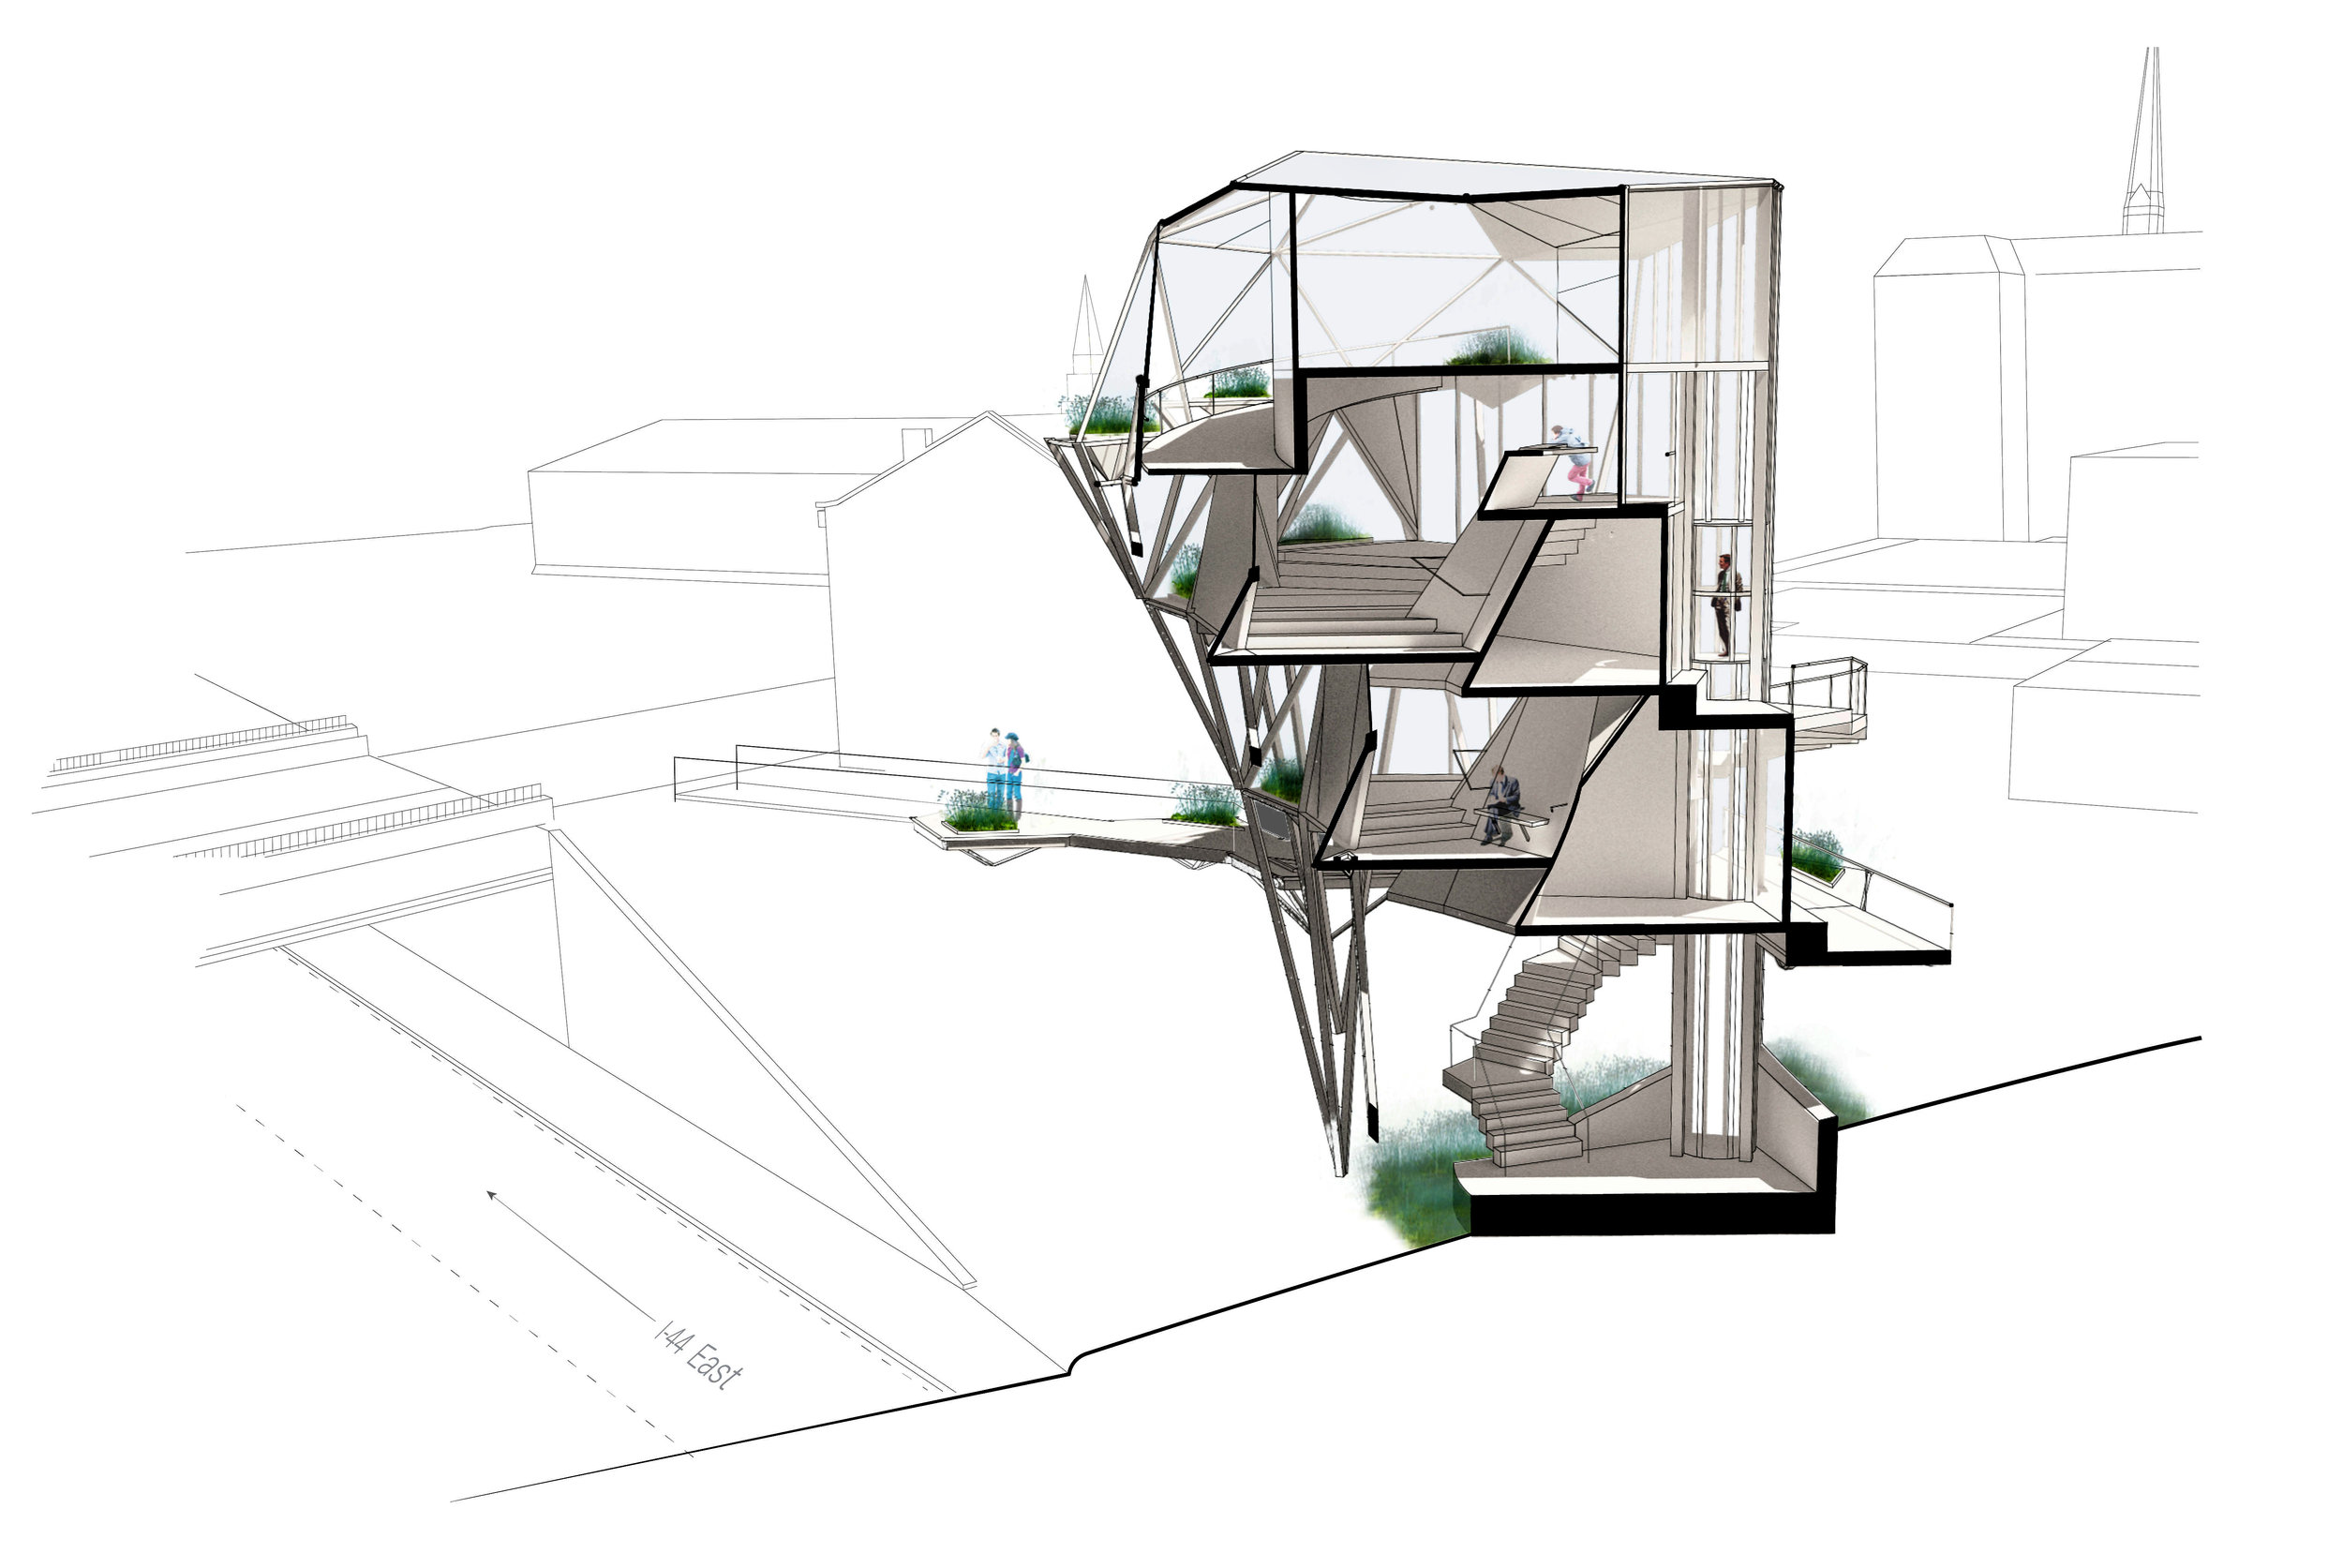 Vertical Greenhouse - WashU Core Studio III - Greenhouse - Soulard, St. Louis, MOpreserving urban ecology2015